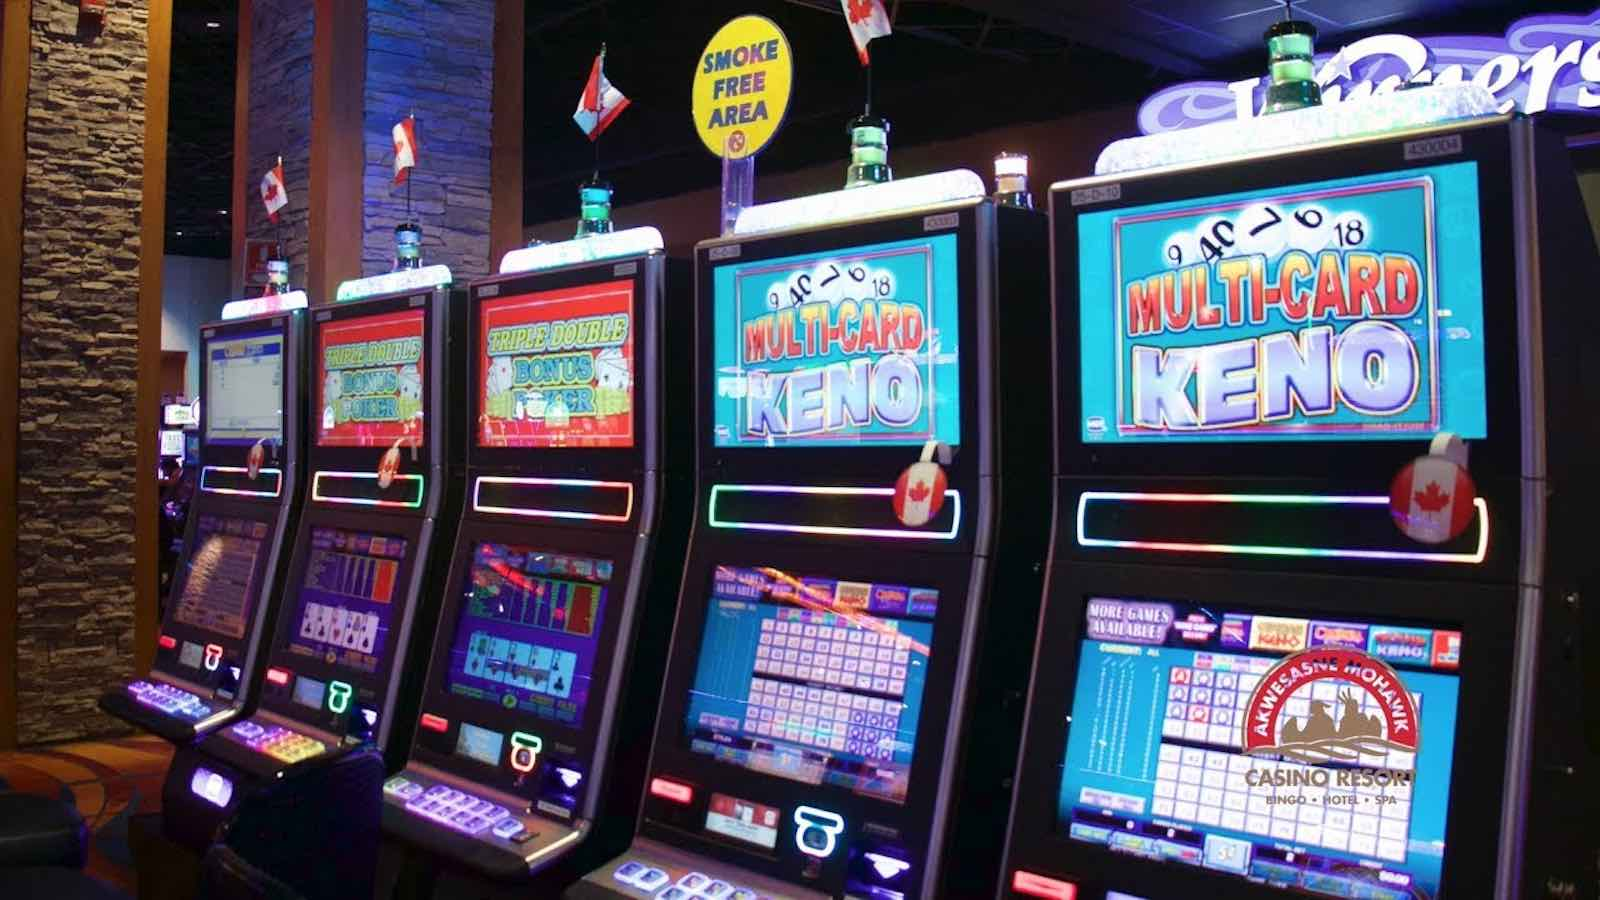 While it is true that slots are a game of luck, today's diversity of games and features allows some gaming strategies.